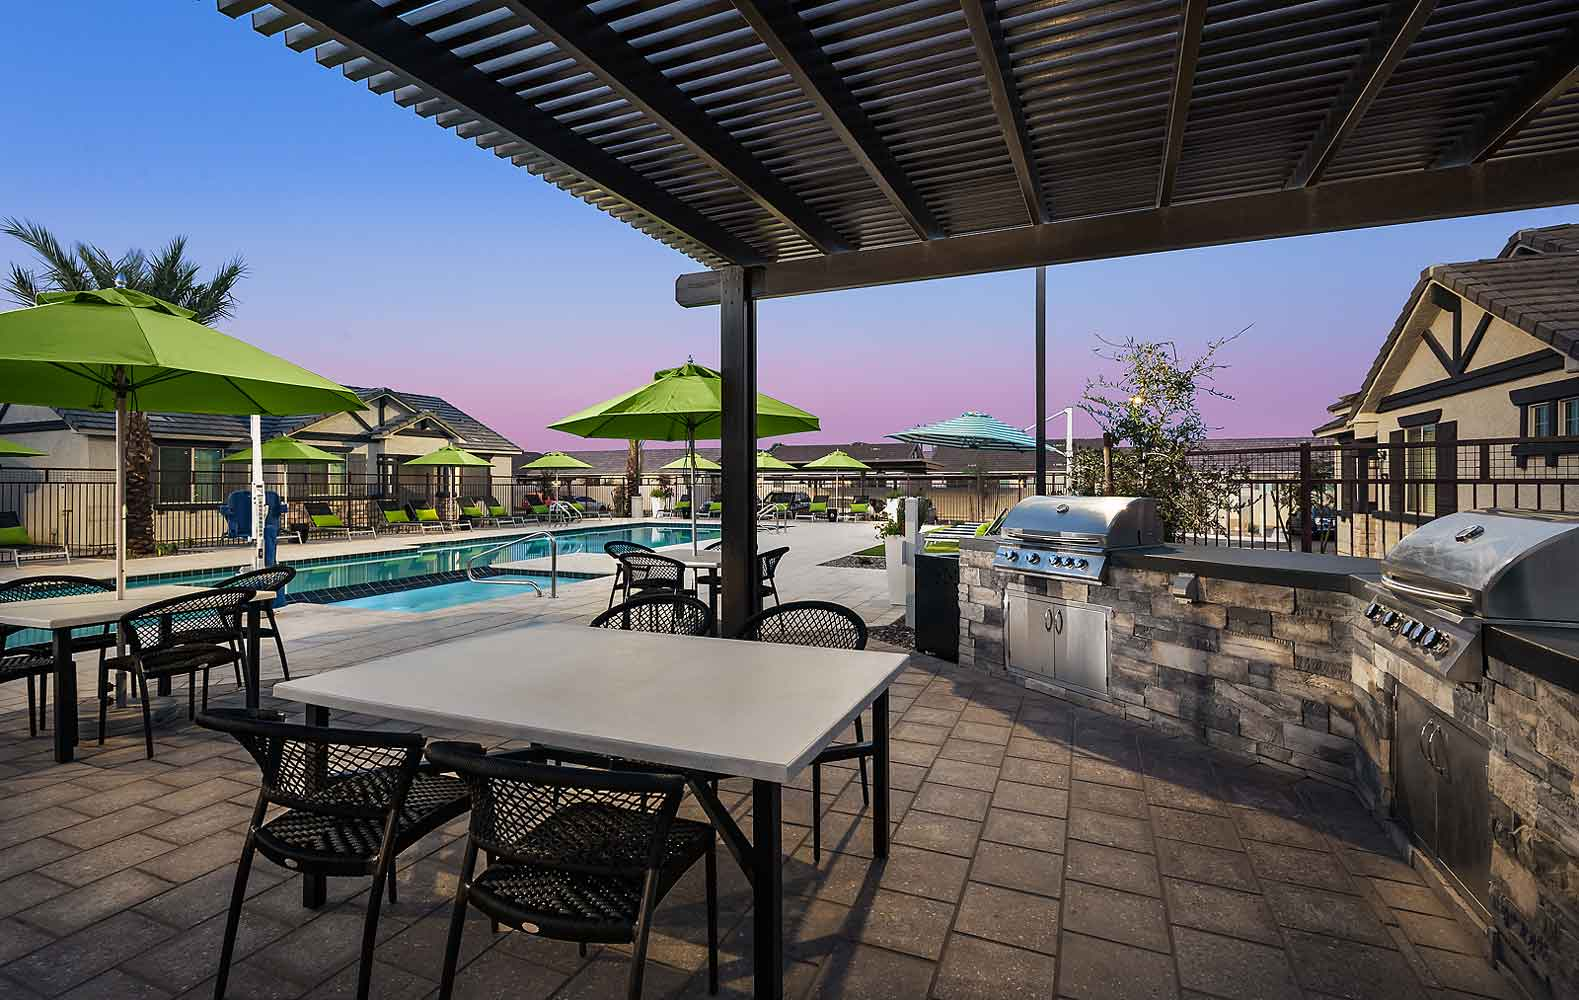 Barbeque Area at Harvard Crossing Apartments in Goodyear, AZ